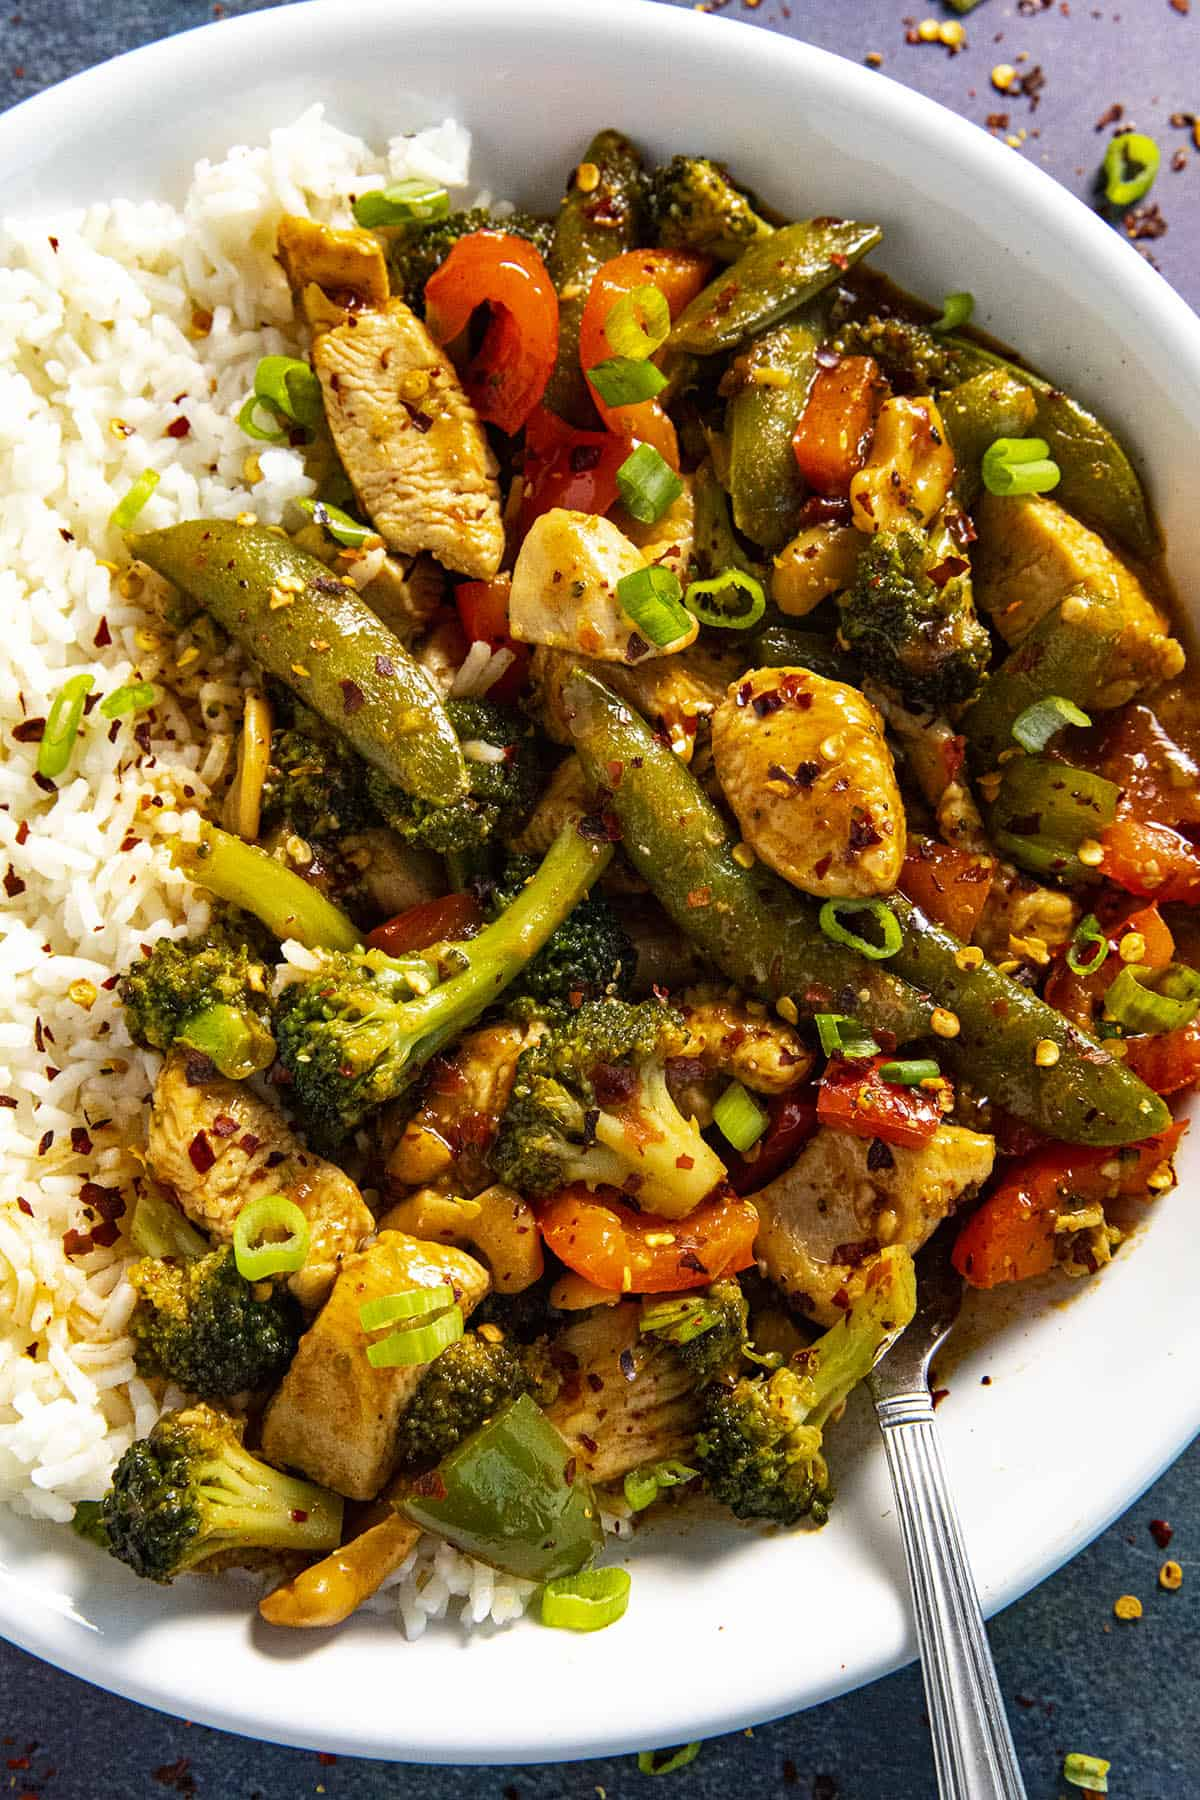 Chicken Stir Fry in a bowl with white rice, ready to serve